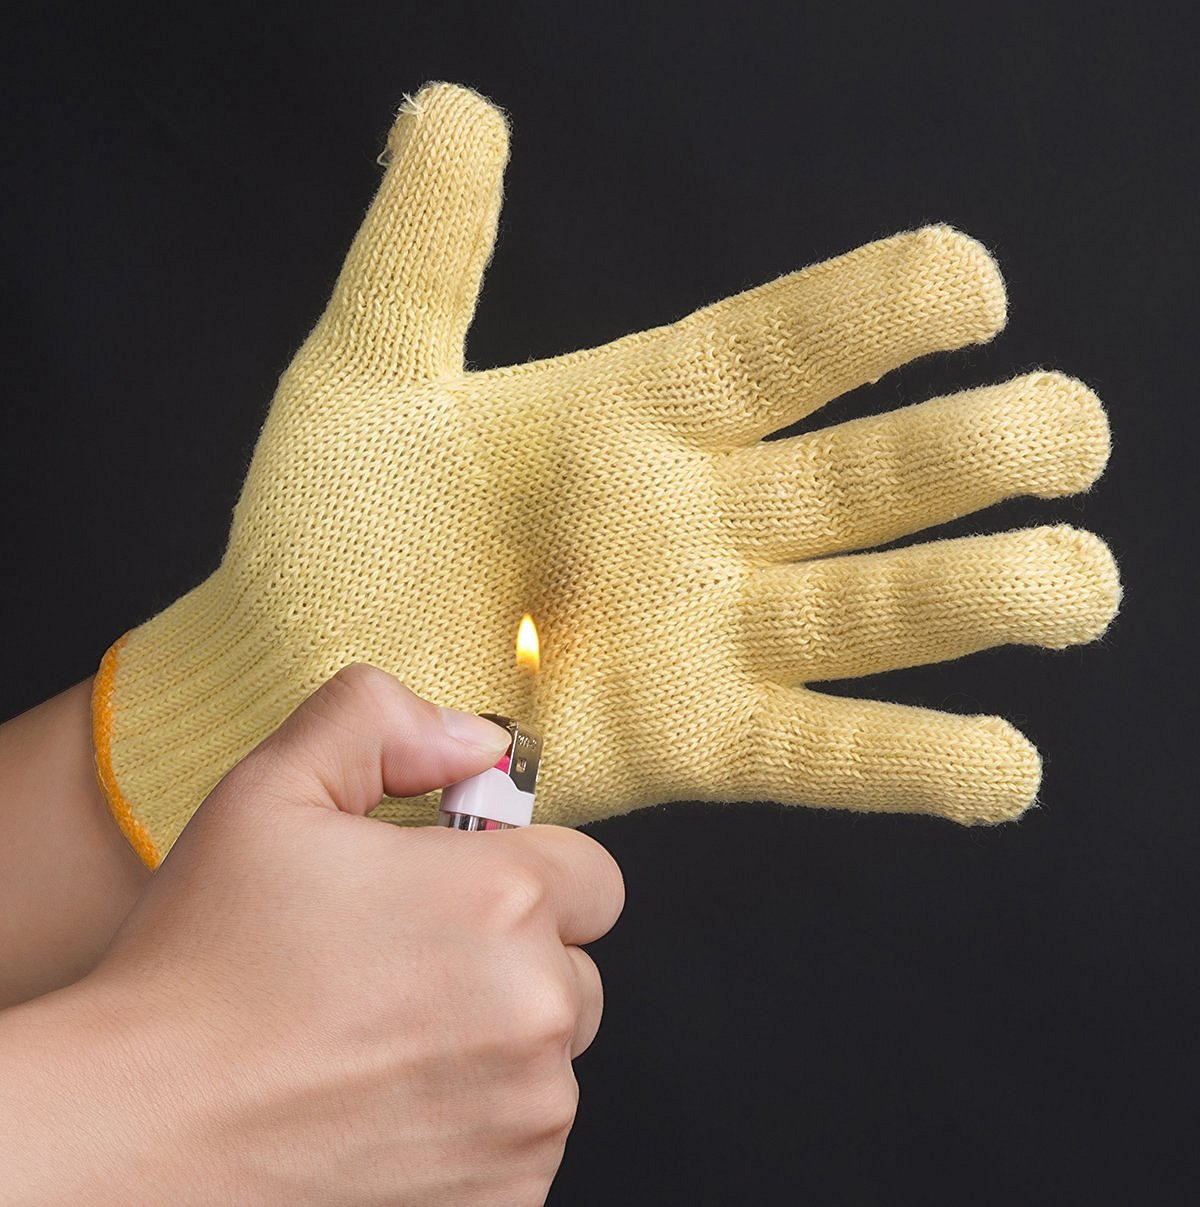 Simple Glove but Fully Protection: made of 100% Kevlar, possible the lightest weight, highest performing gloves (6 Pairs Pack)